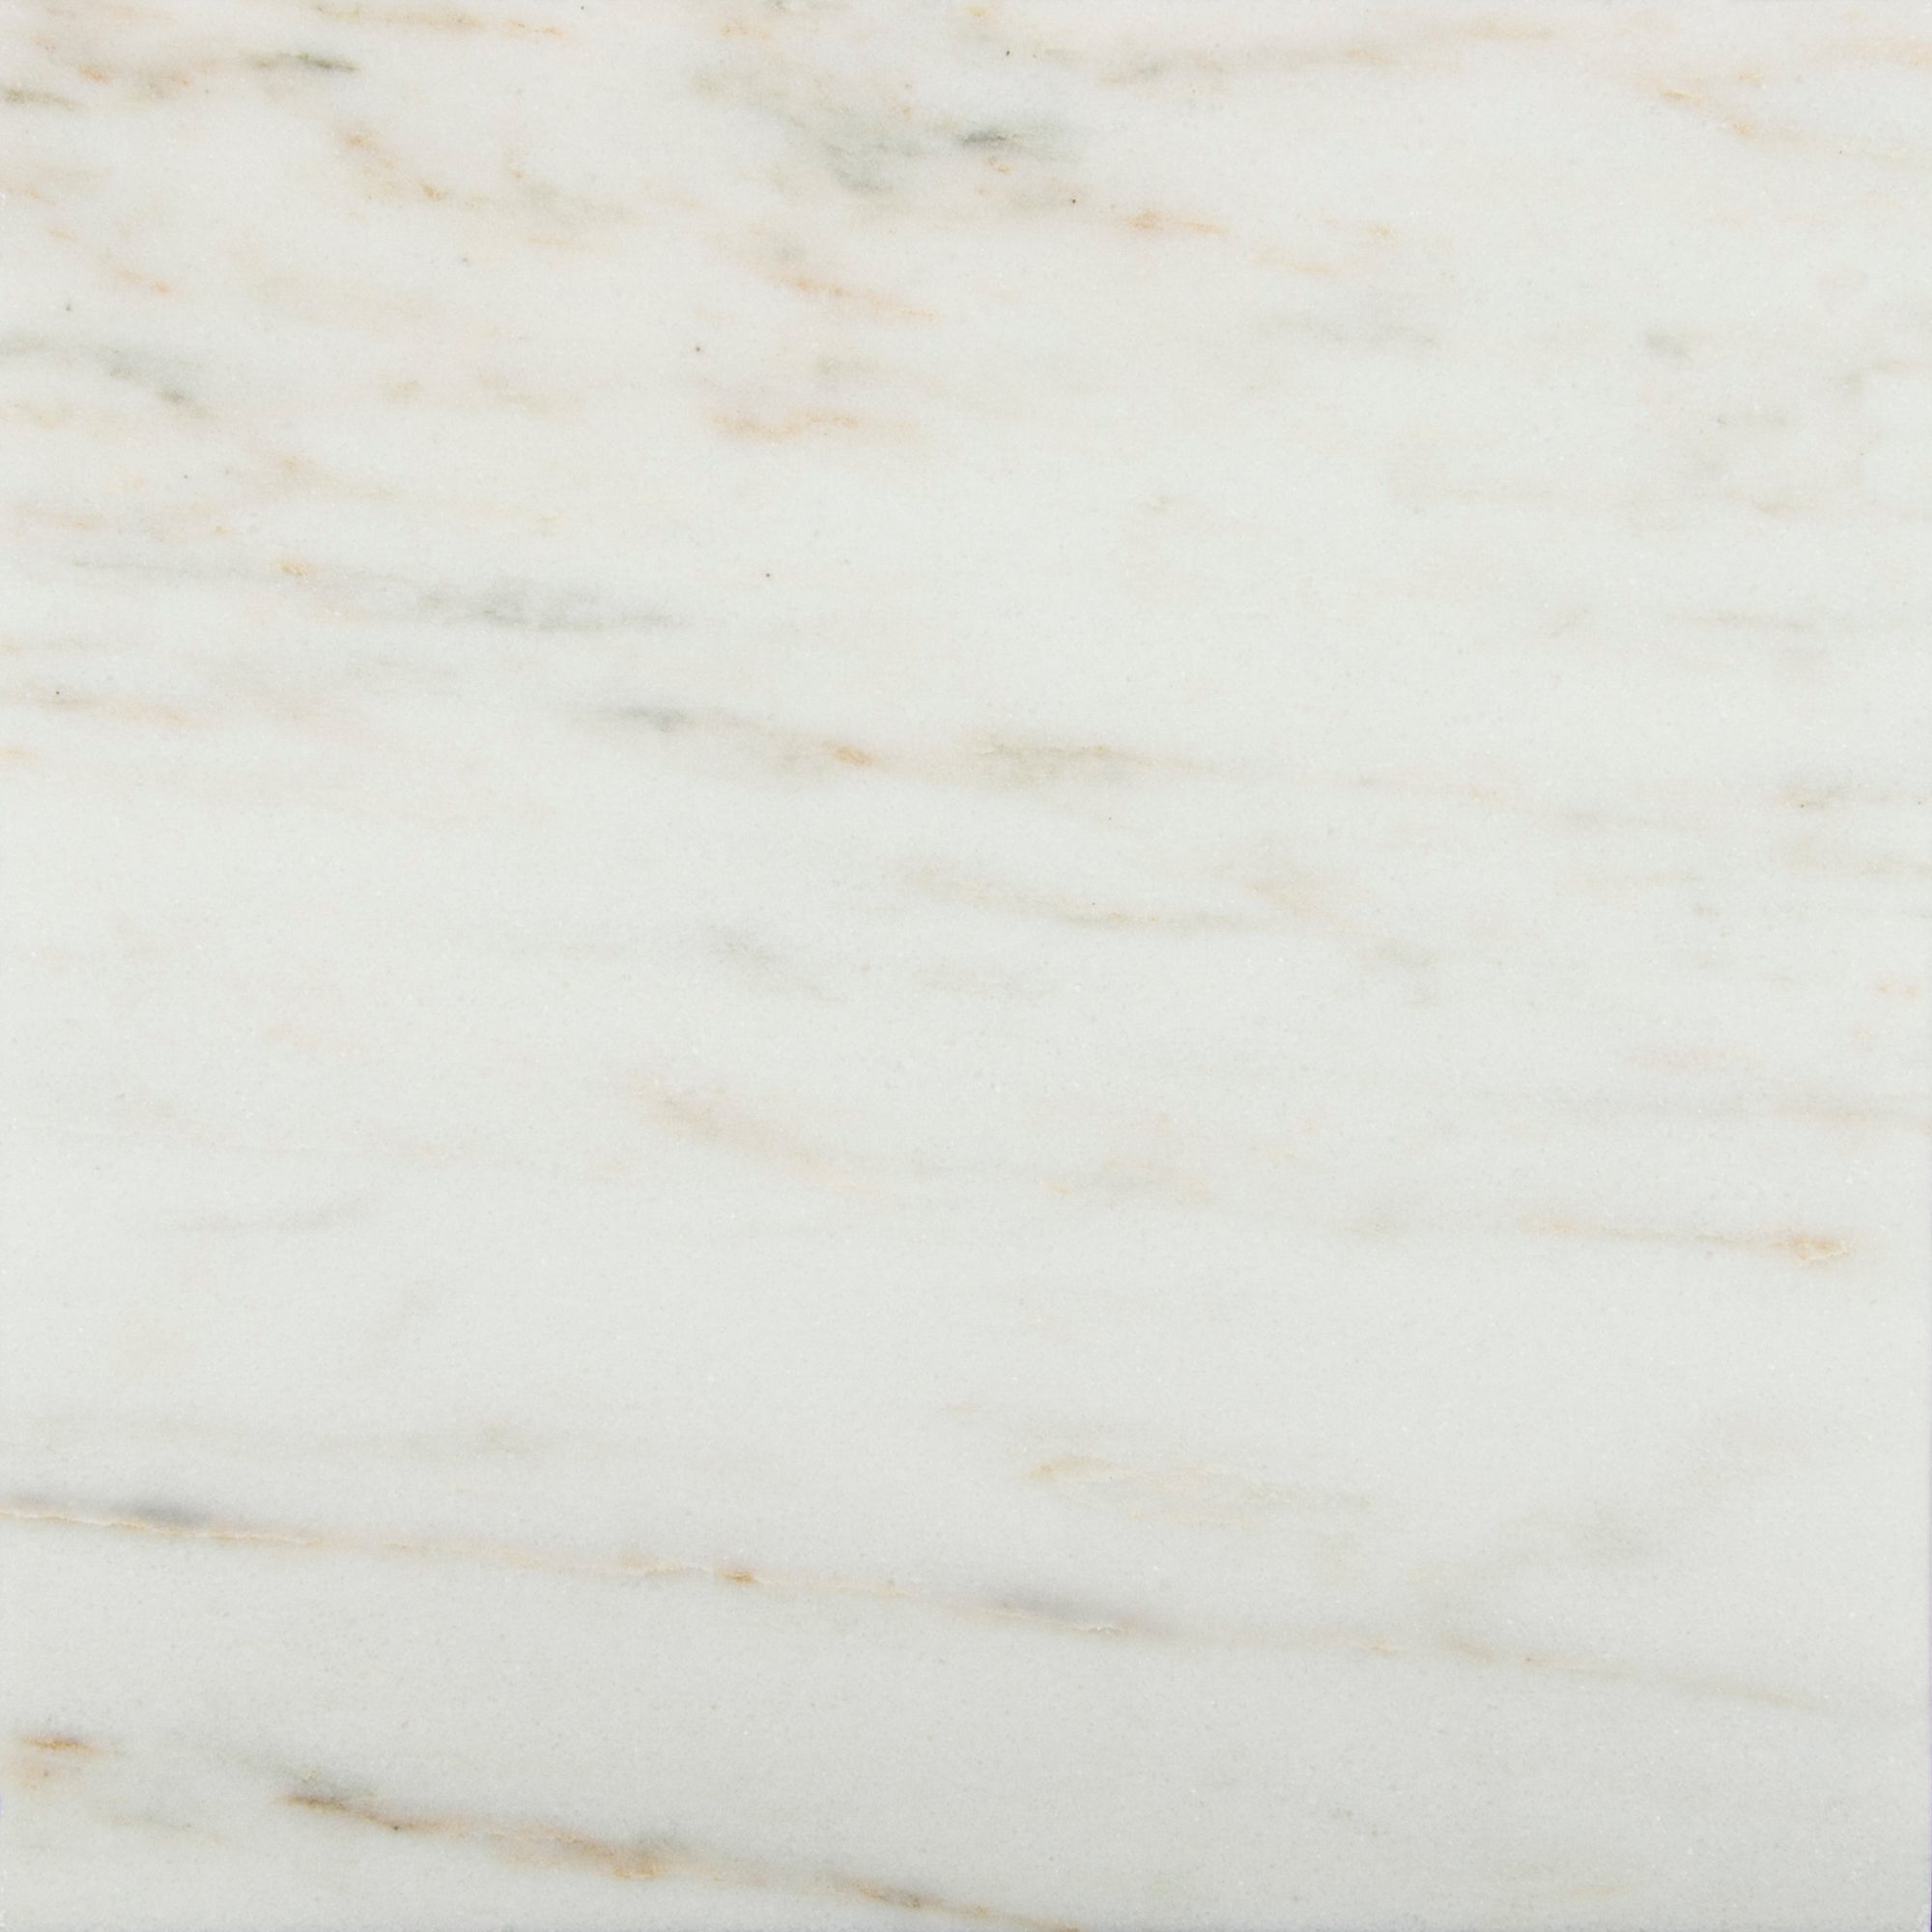 Danby Imperial Marble Swatch Card  Honed 18 x 18 x 3/8